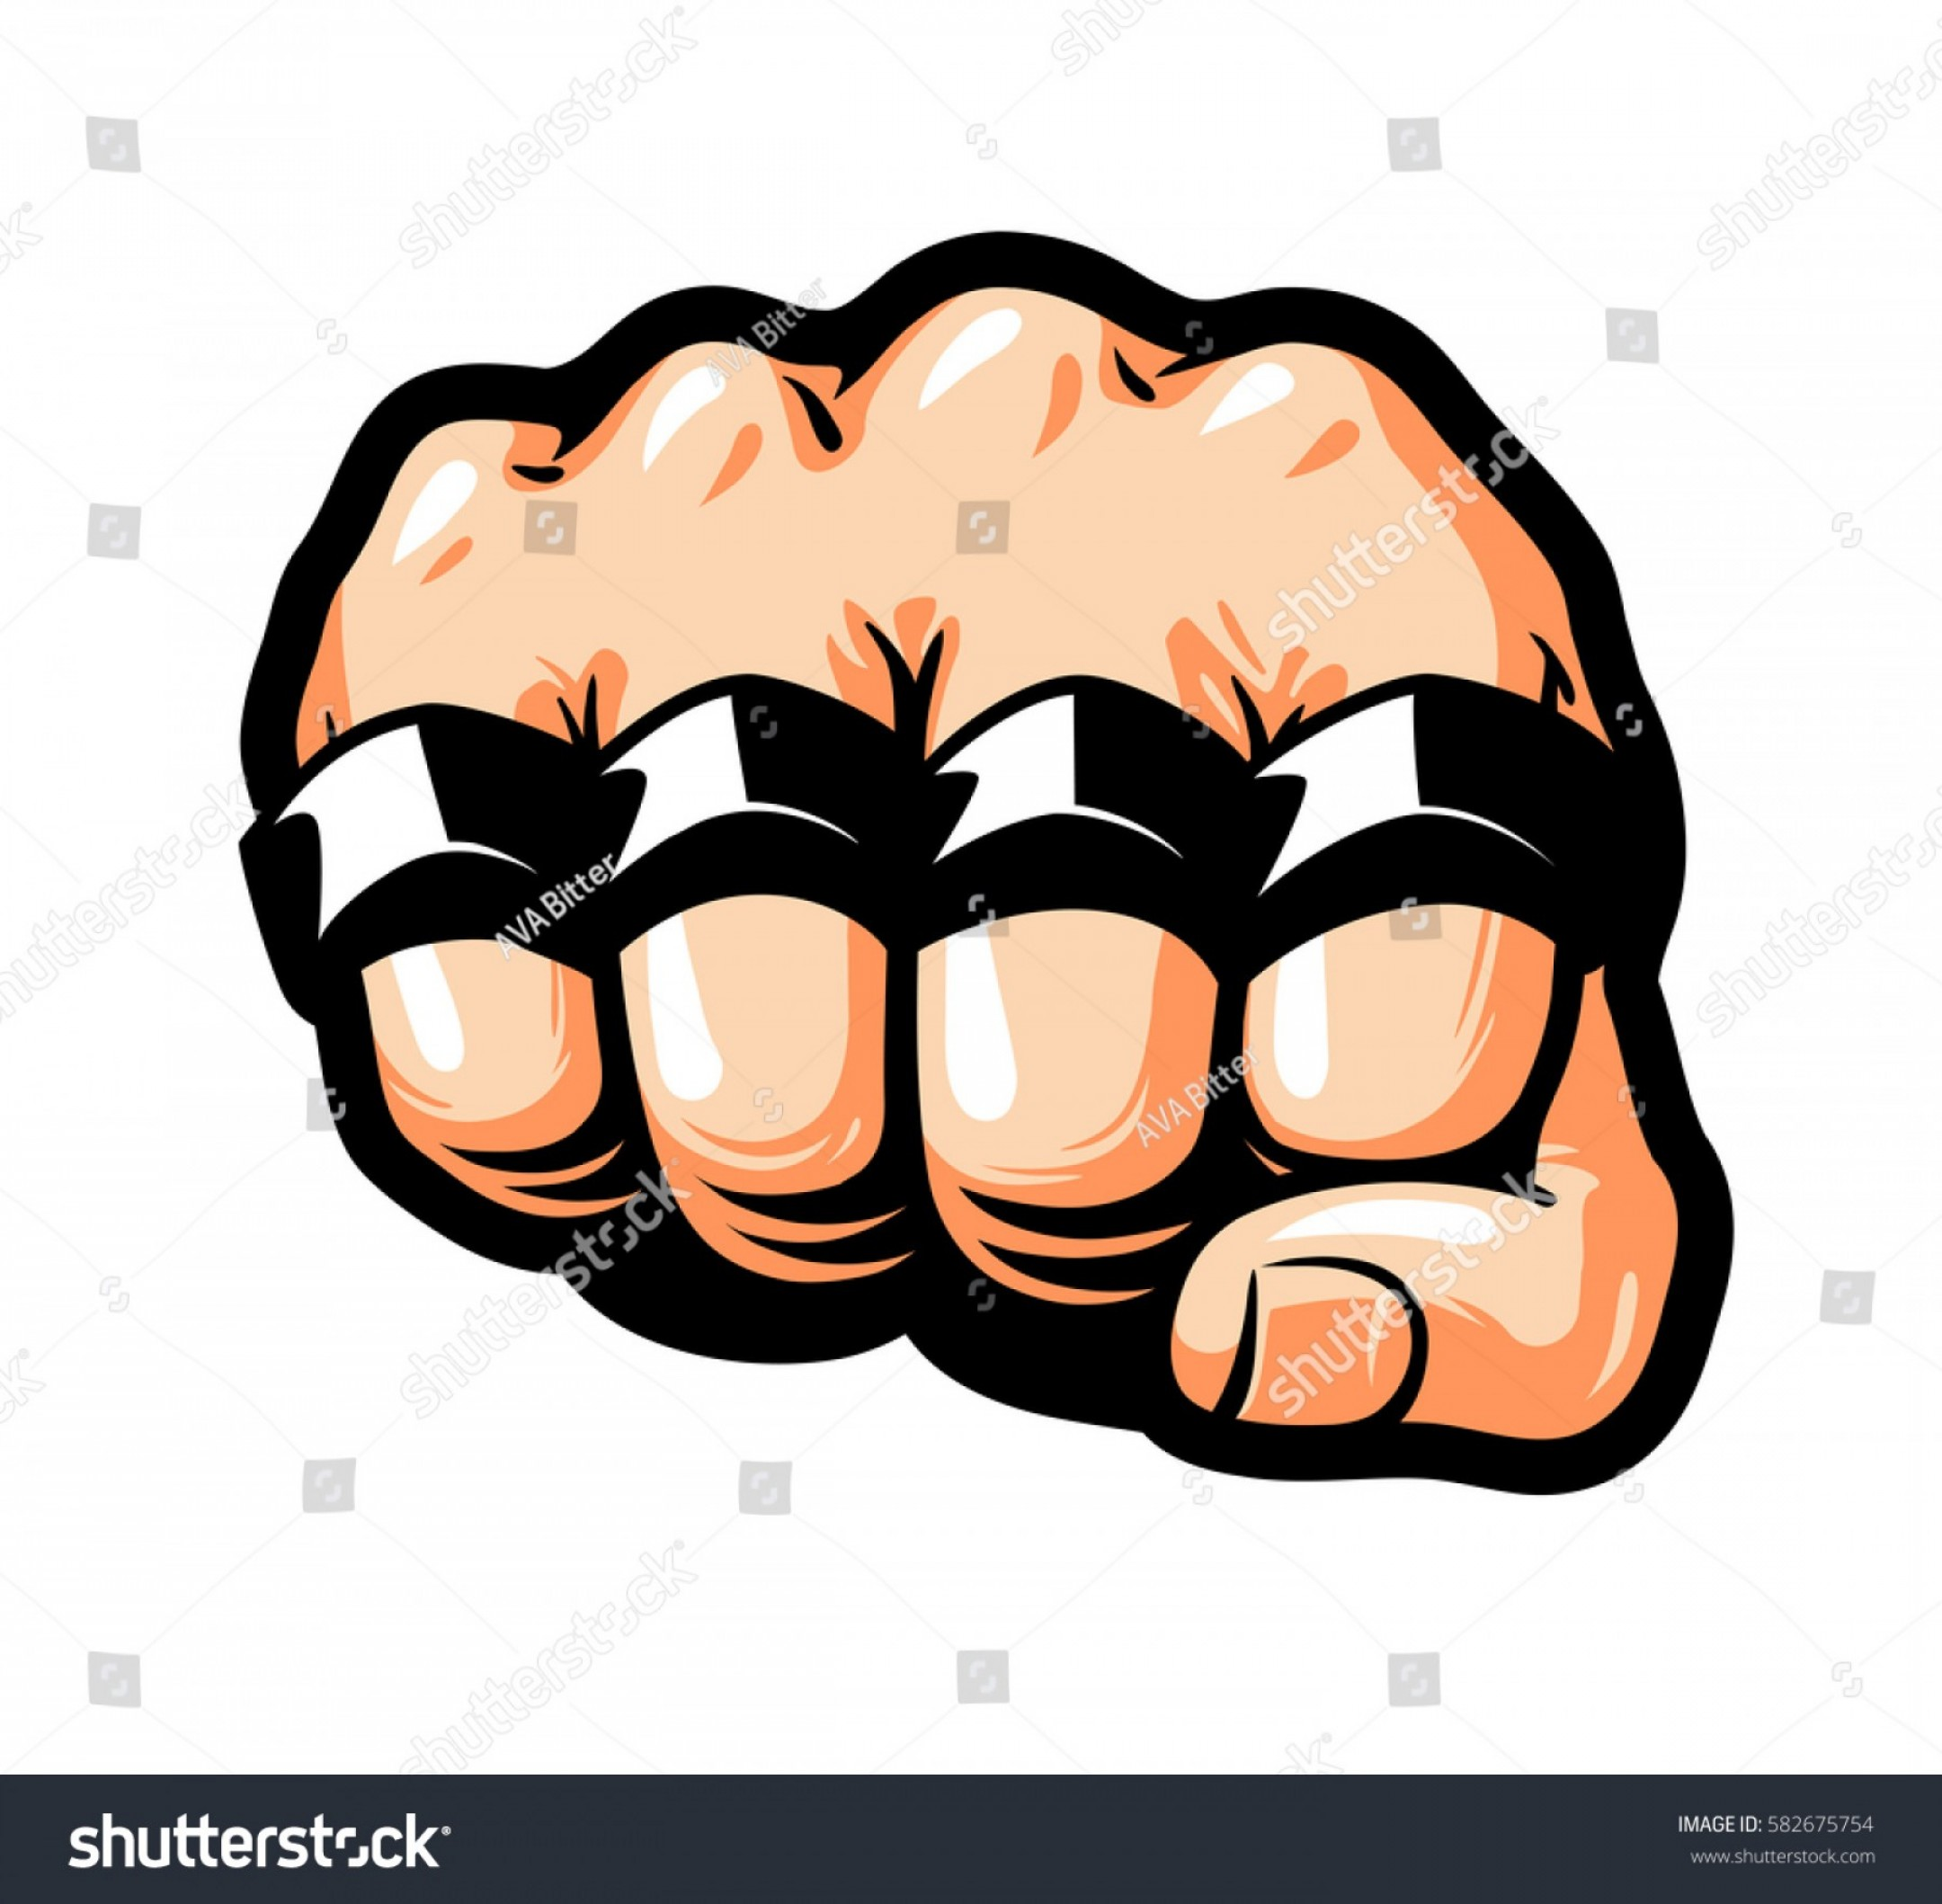 Art Stencil Thug Vector: Clenched Fist Brass Knuckles Gangster Thug